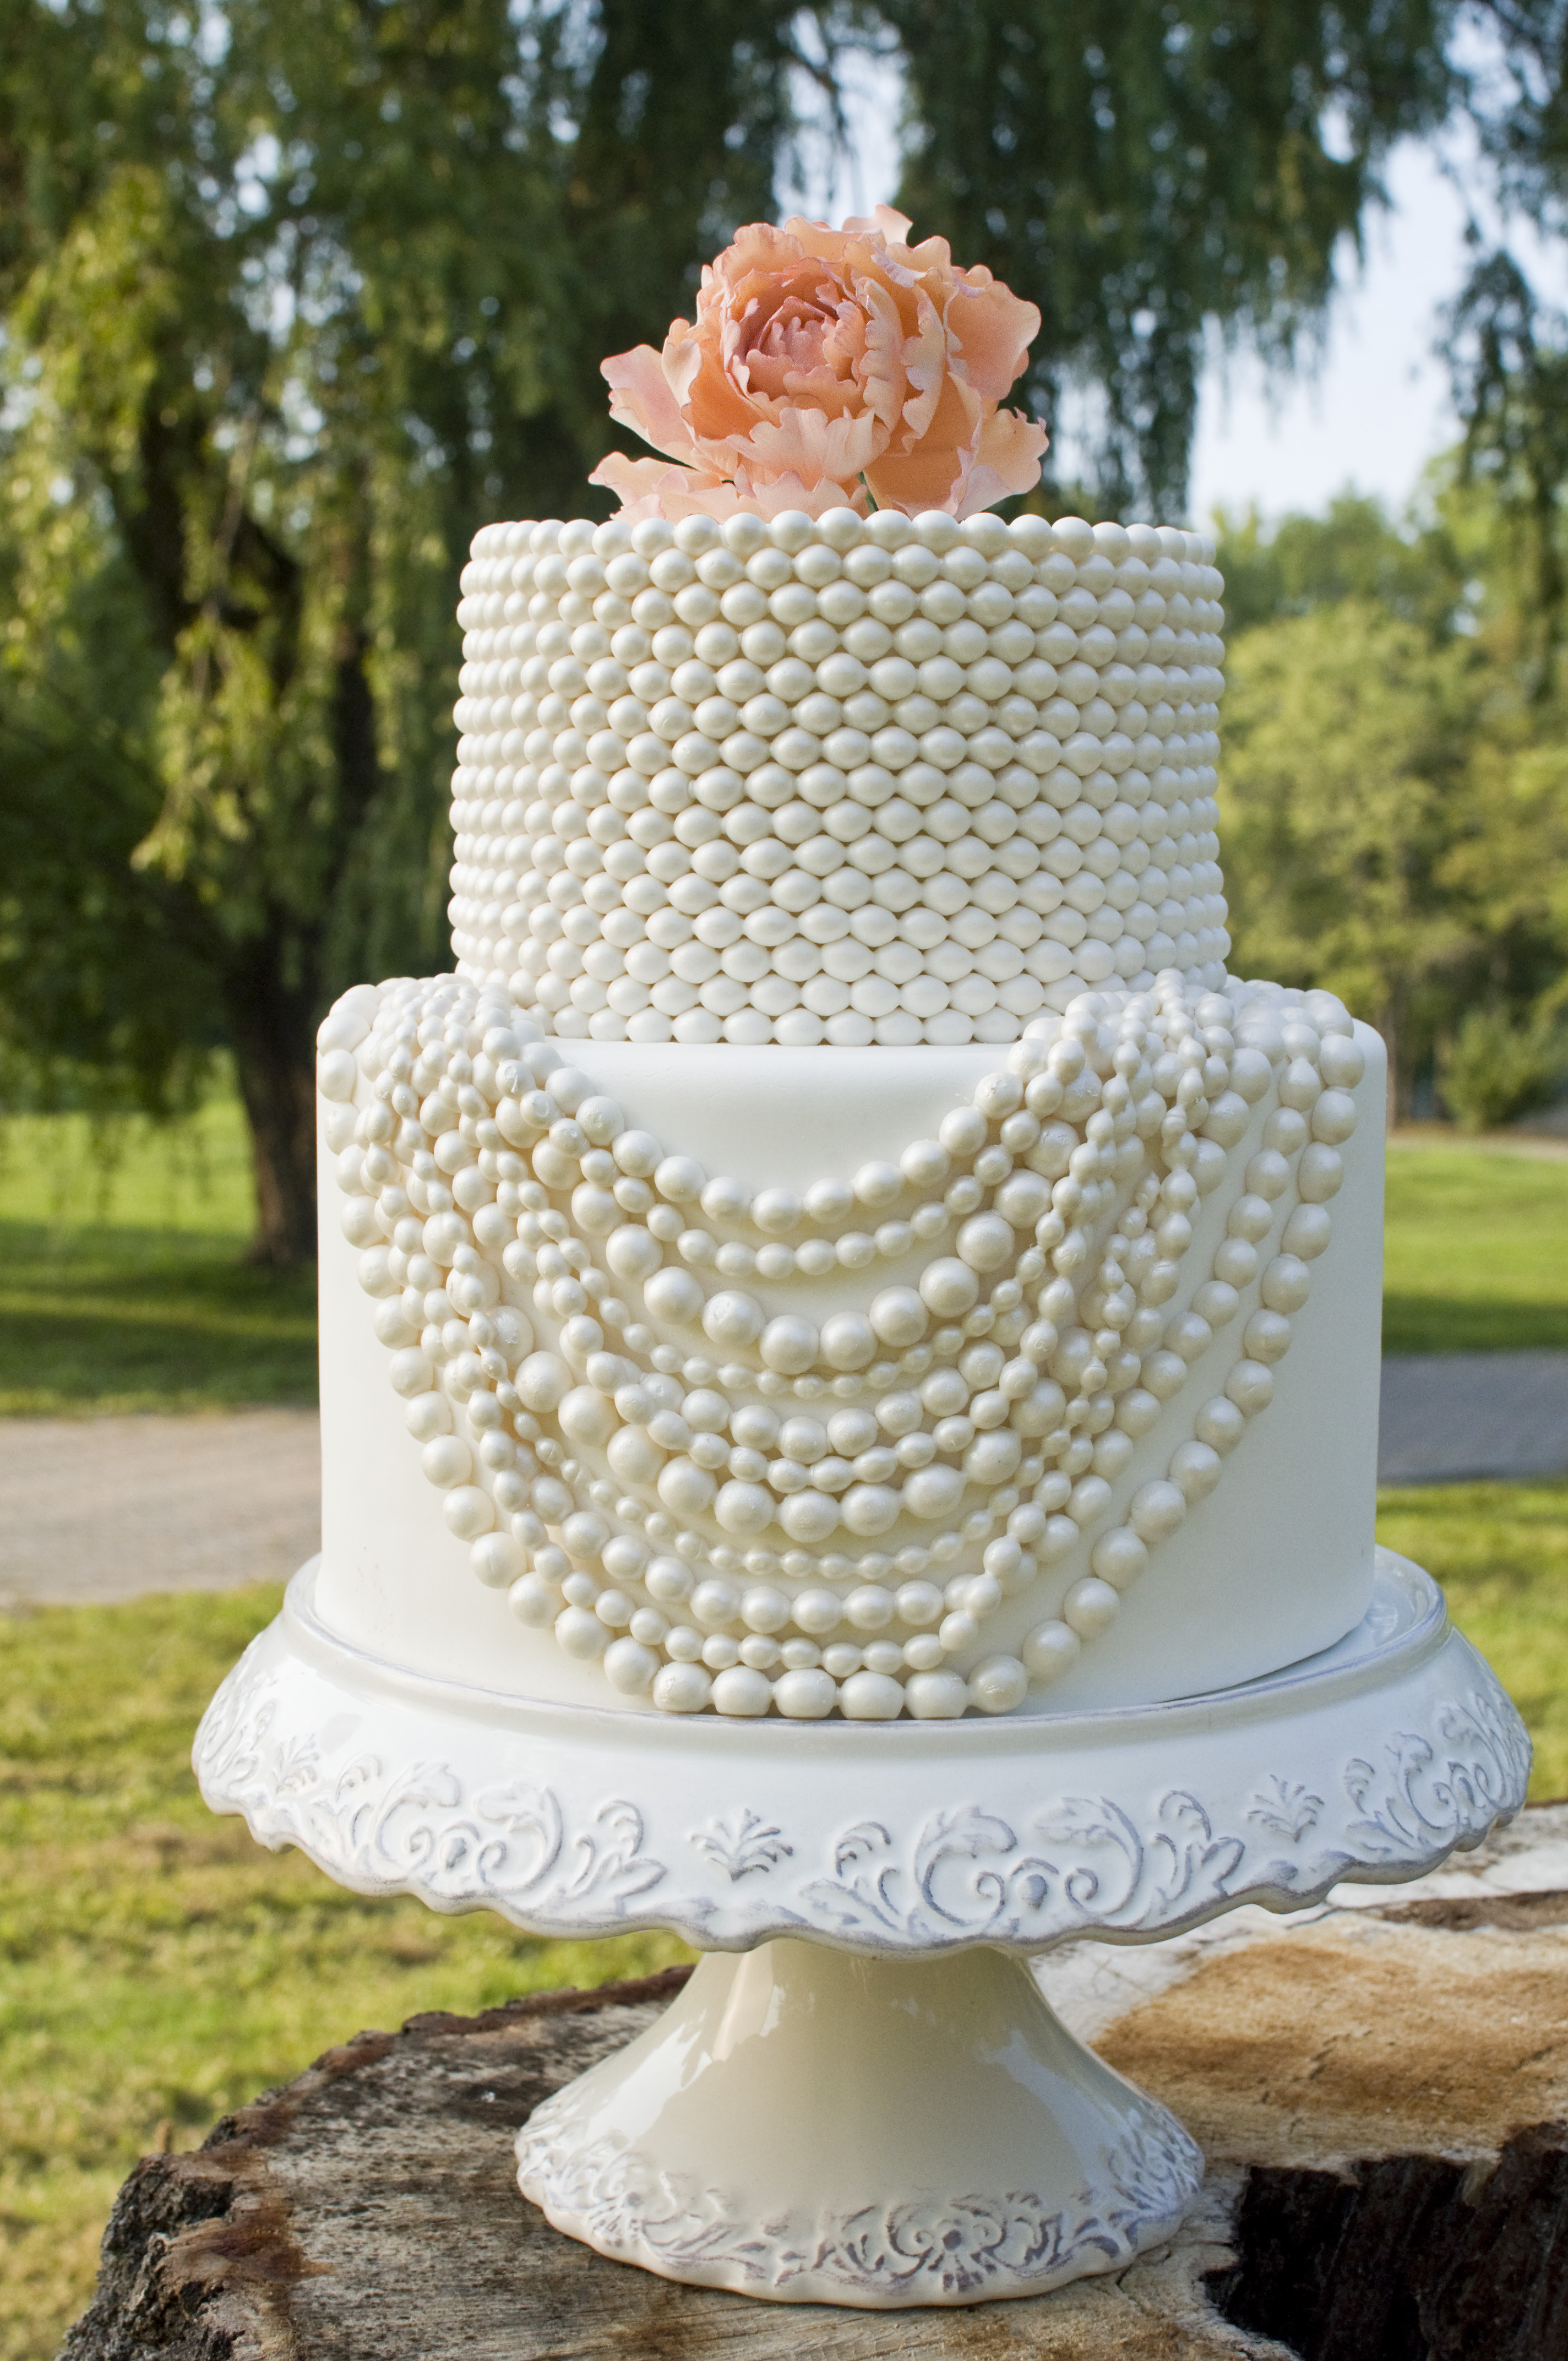 Wedding Cakes With Pearls  Visions of Pearls